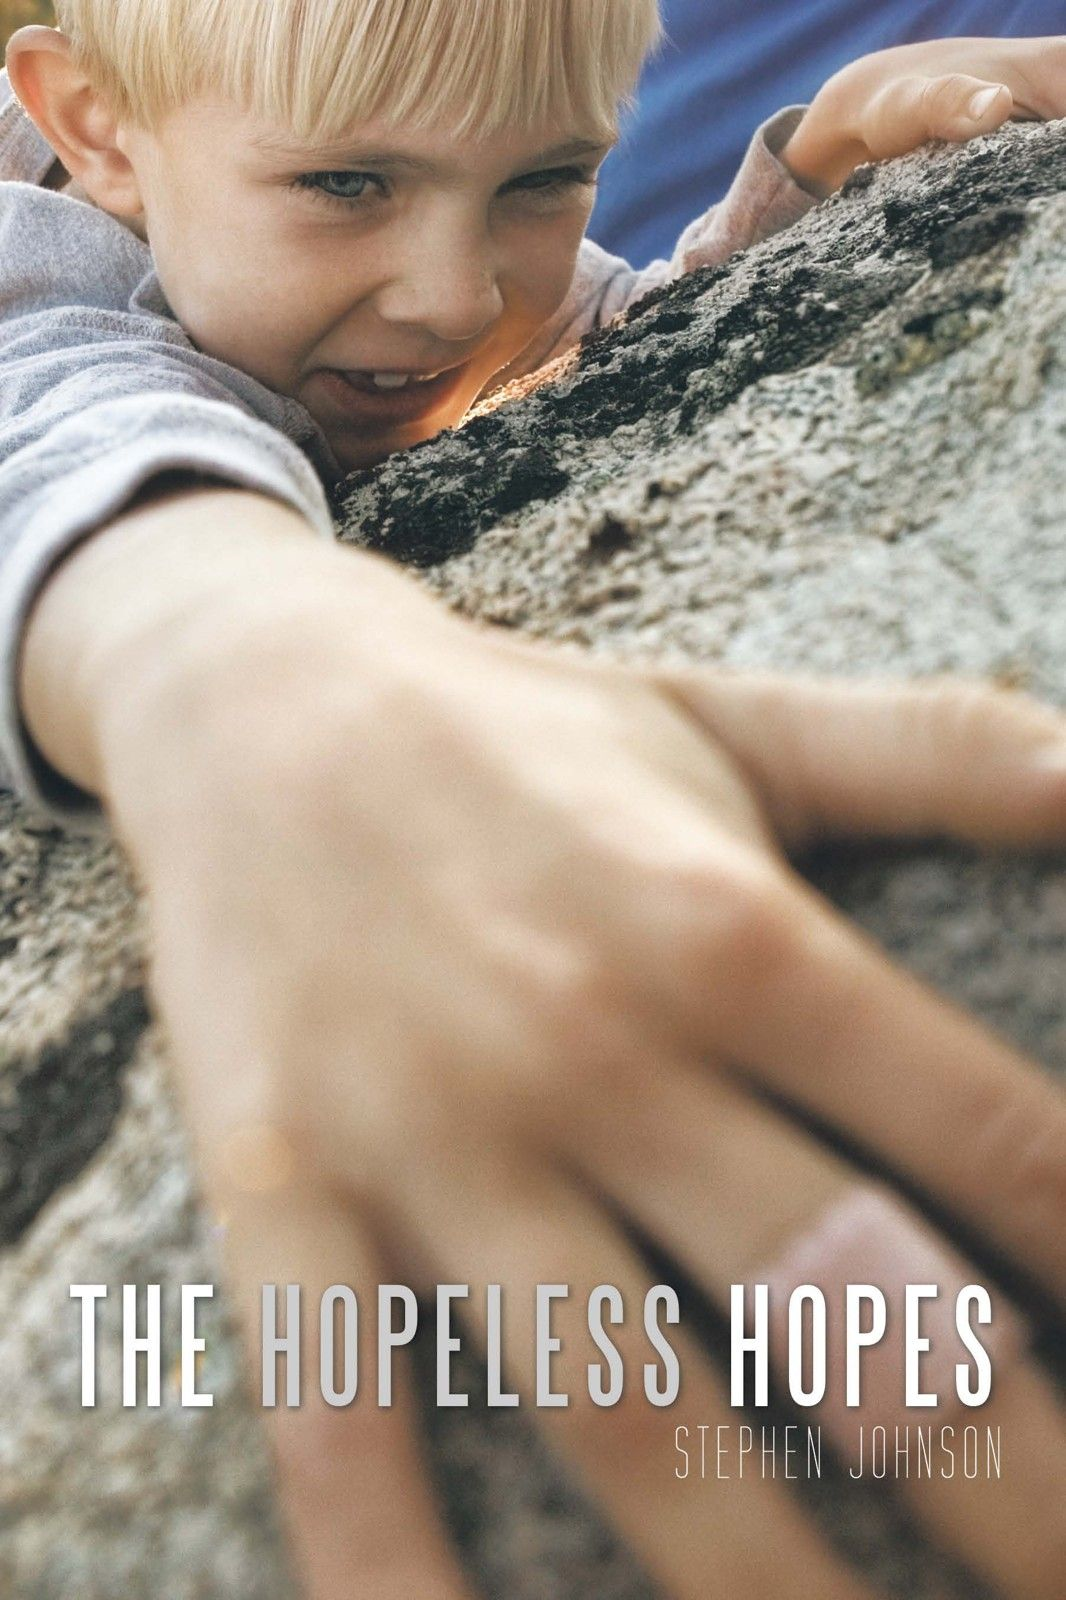 THE HOPELESS HOPES